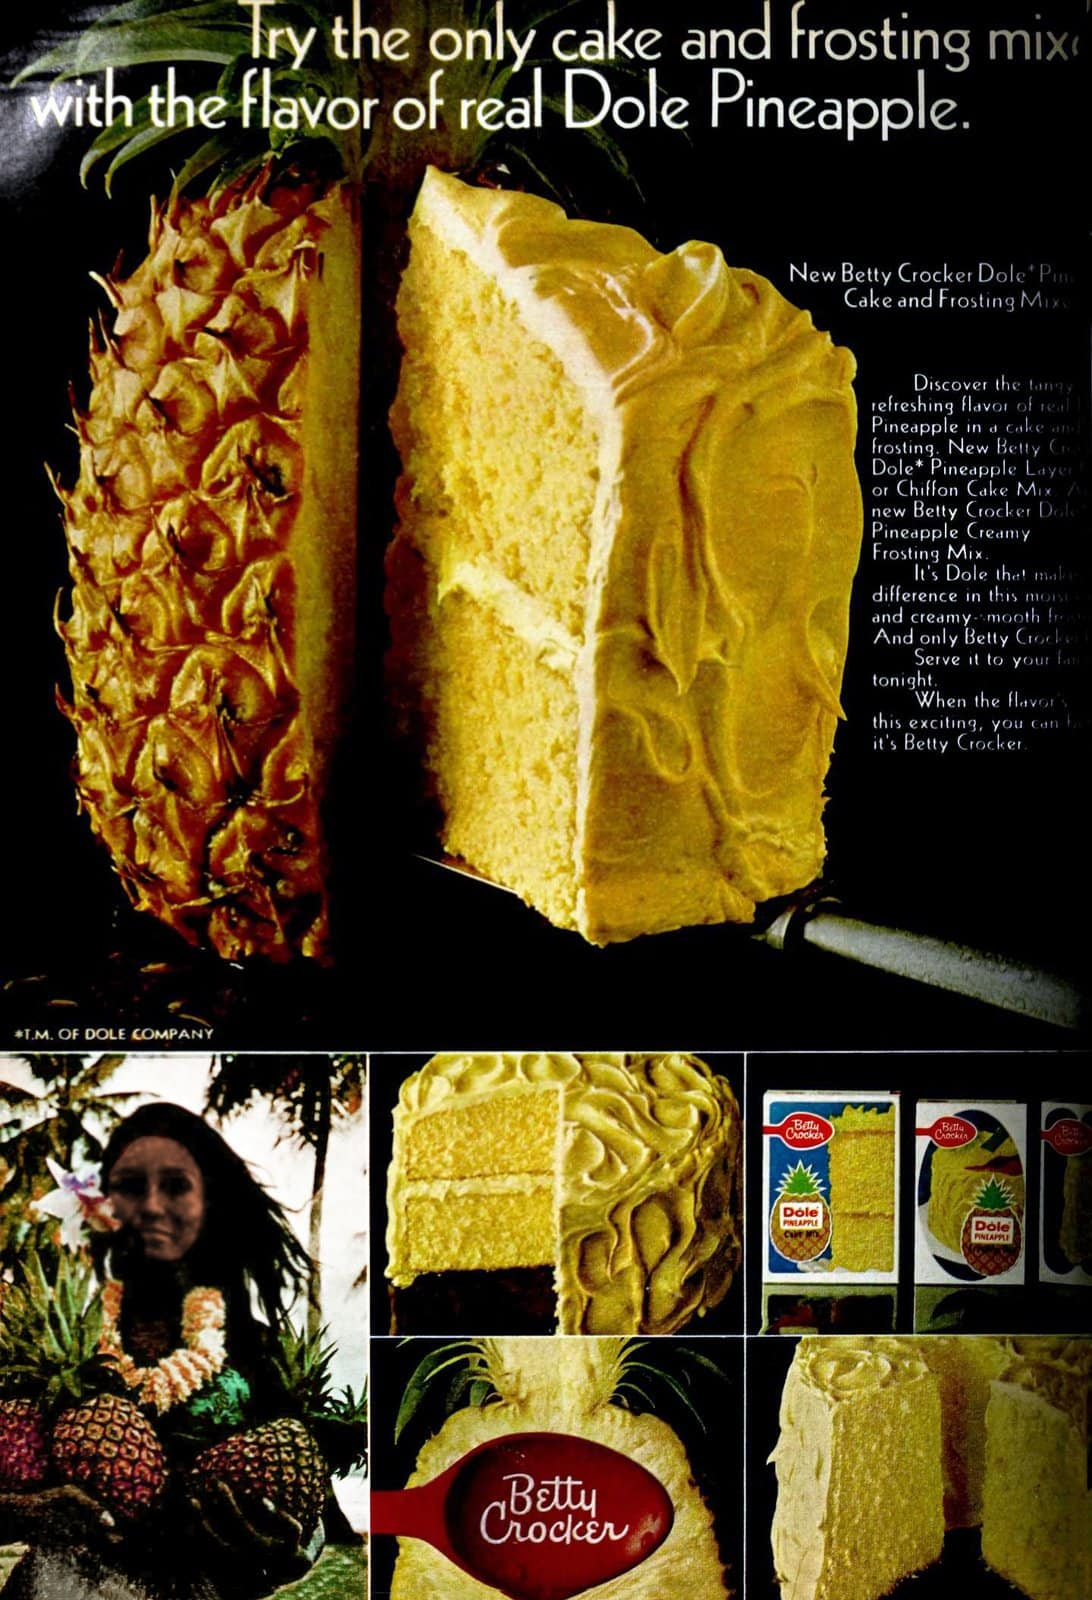 Discontinued retro 1960s Betty Crocker Dole Pineapple cake mix (1969)